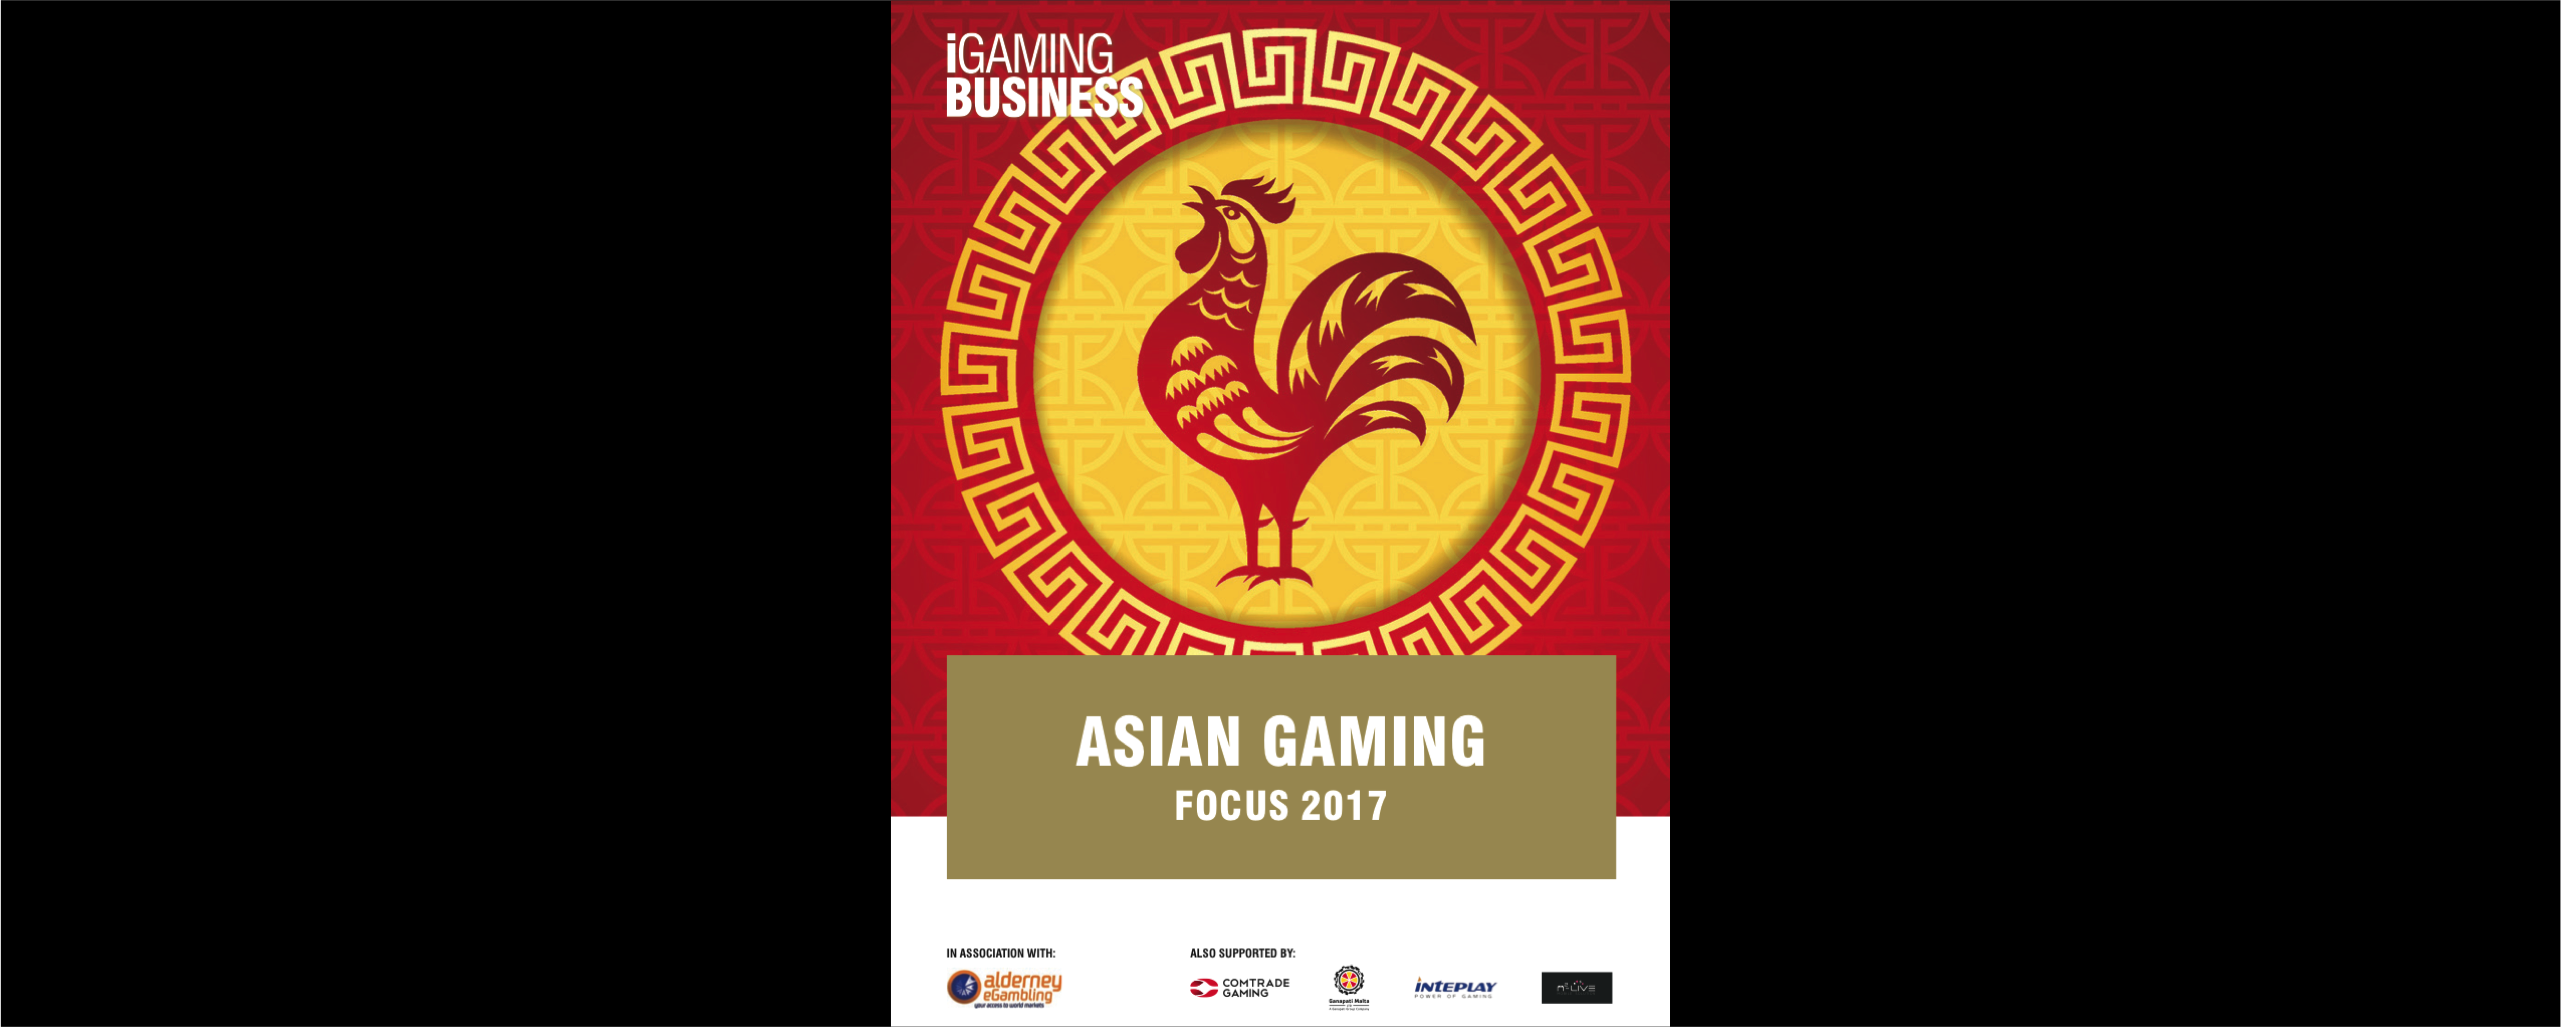 iGaming Business - Asian Gaming Focus 2017